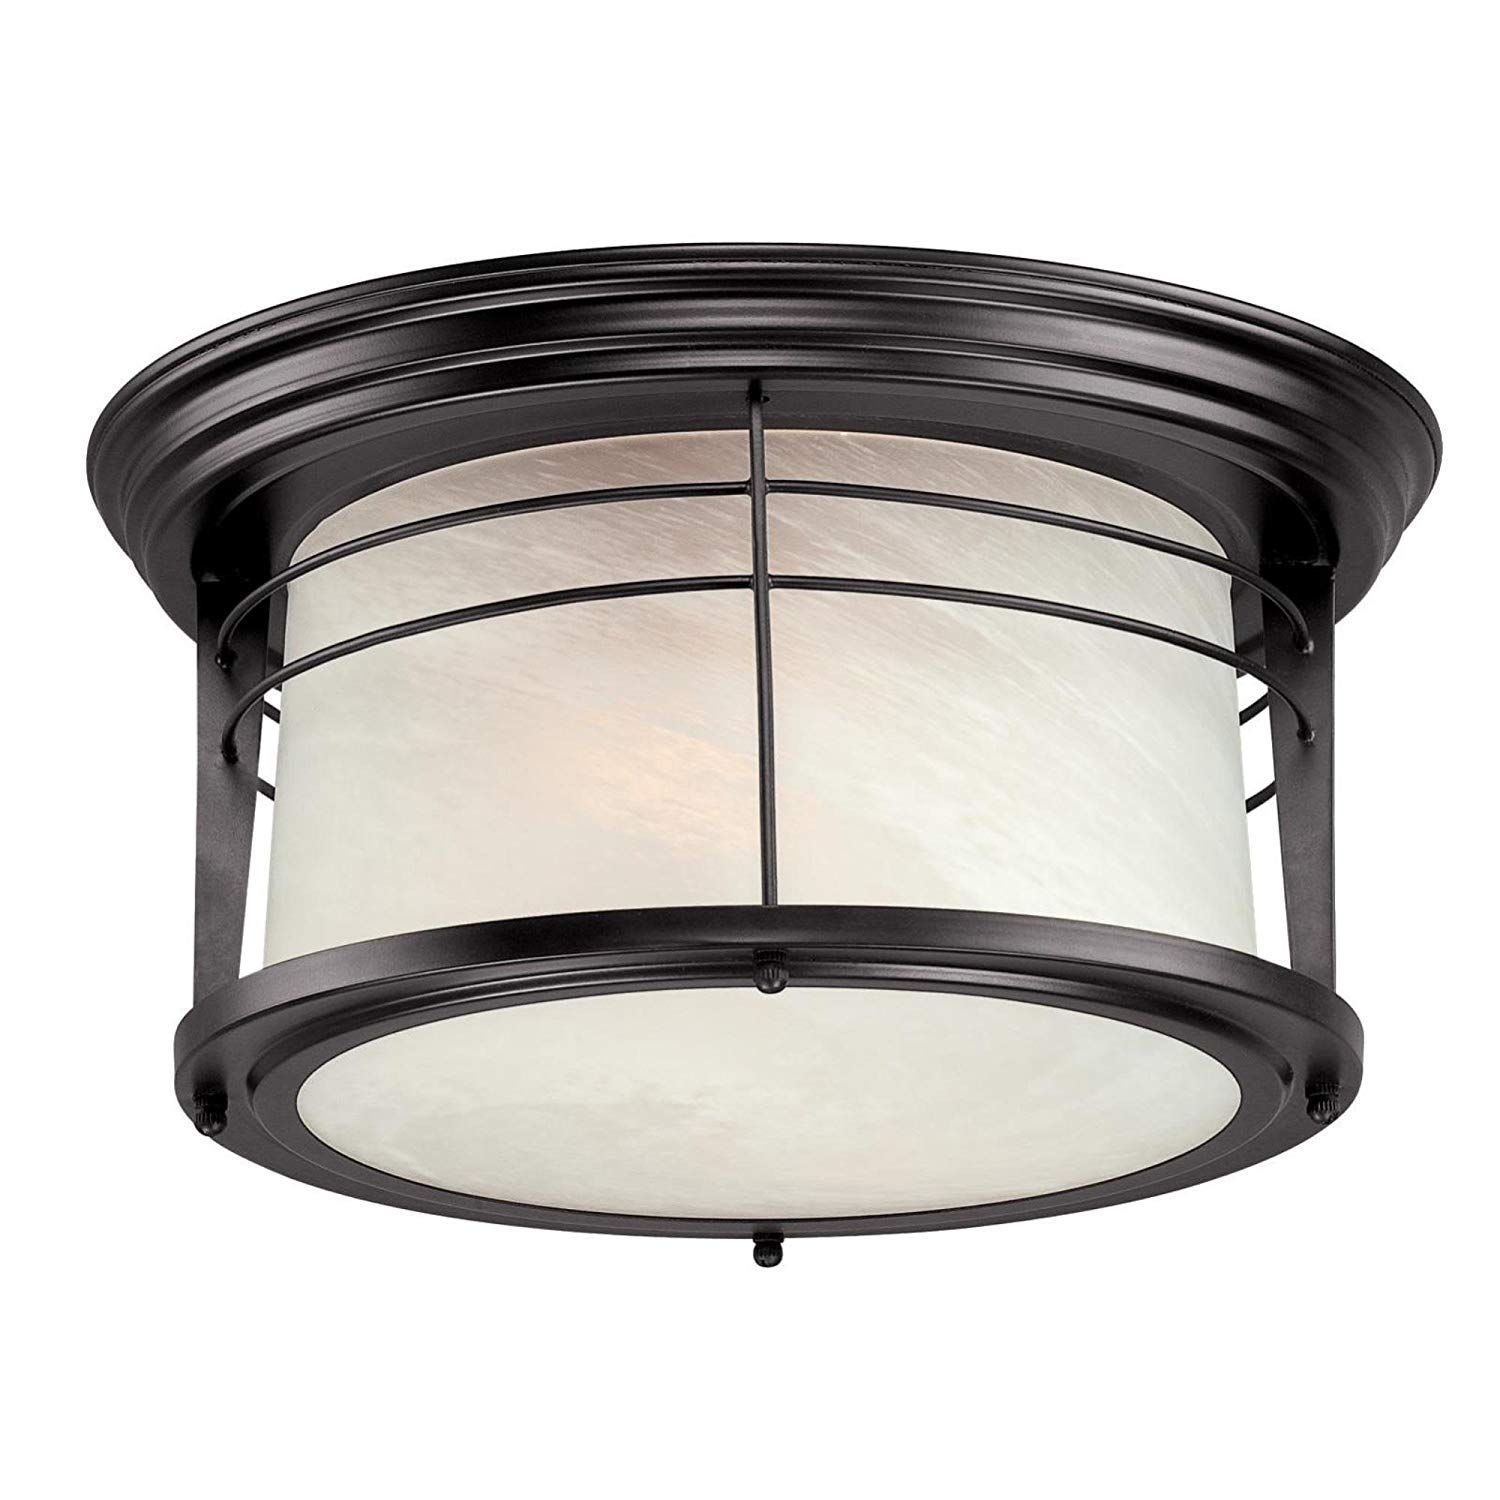 Amazon Com Westinghouse 05937003861 6674600 Senecaville Two Light Exterior Flush Mount Fixture Weath Porch Light Fixtures Porch Lighting Outdoor Flush Mounts